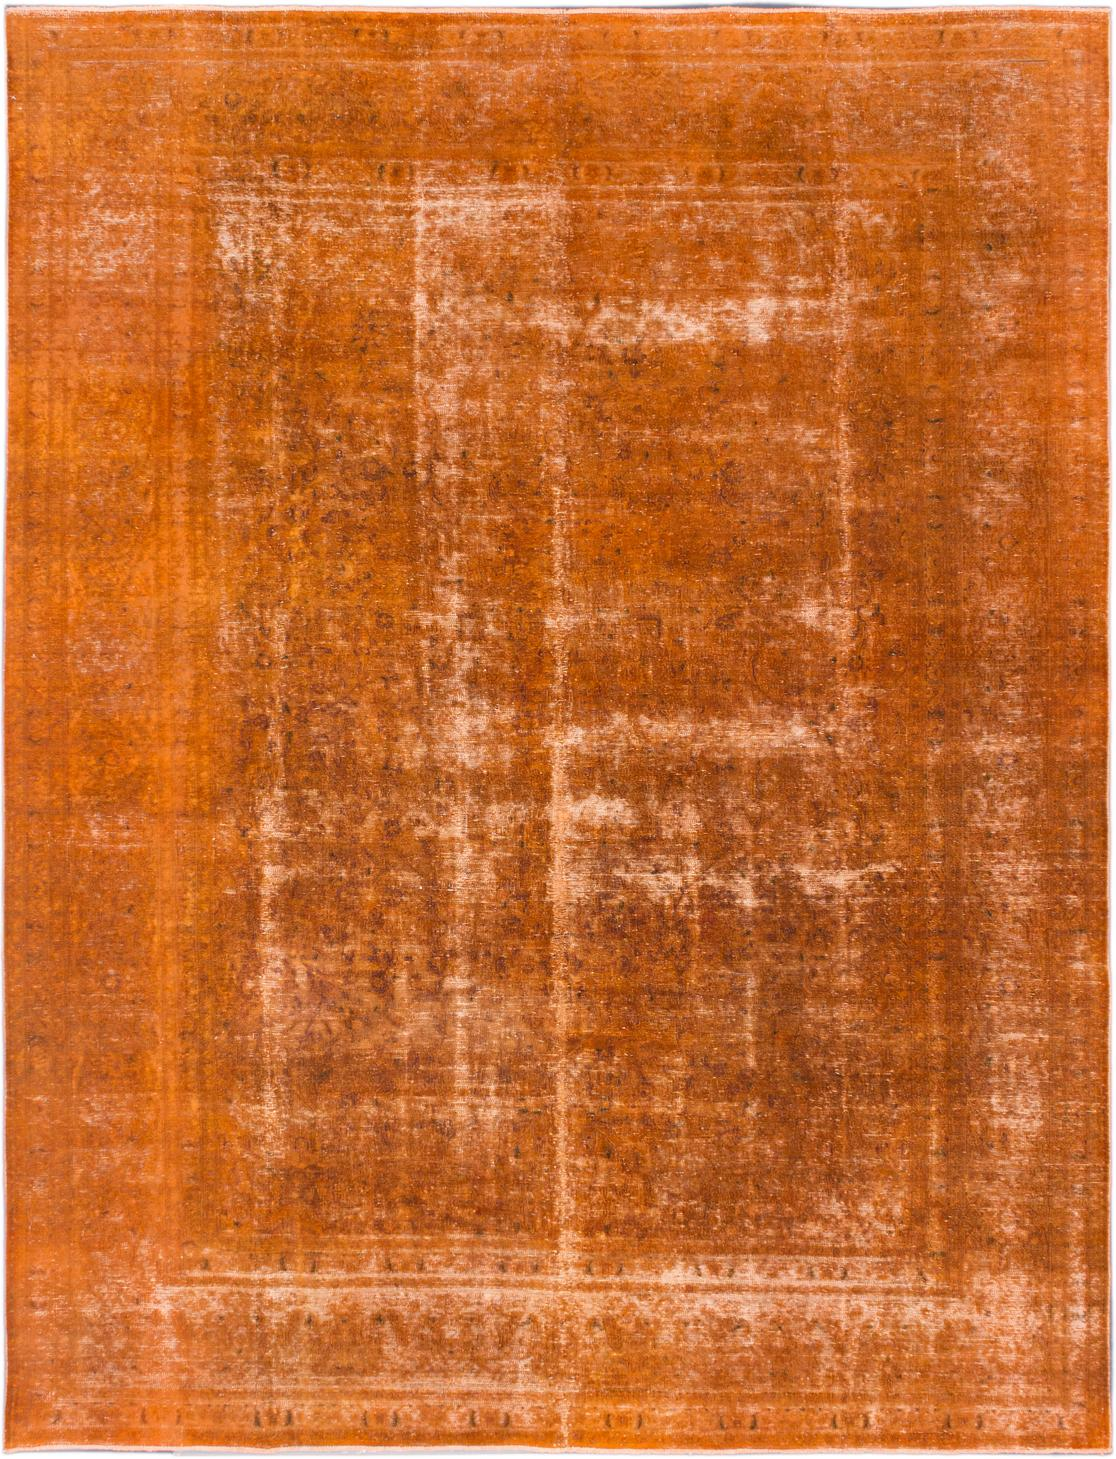 Vintage Amp Used Orange Contemporary Handmade Rugs